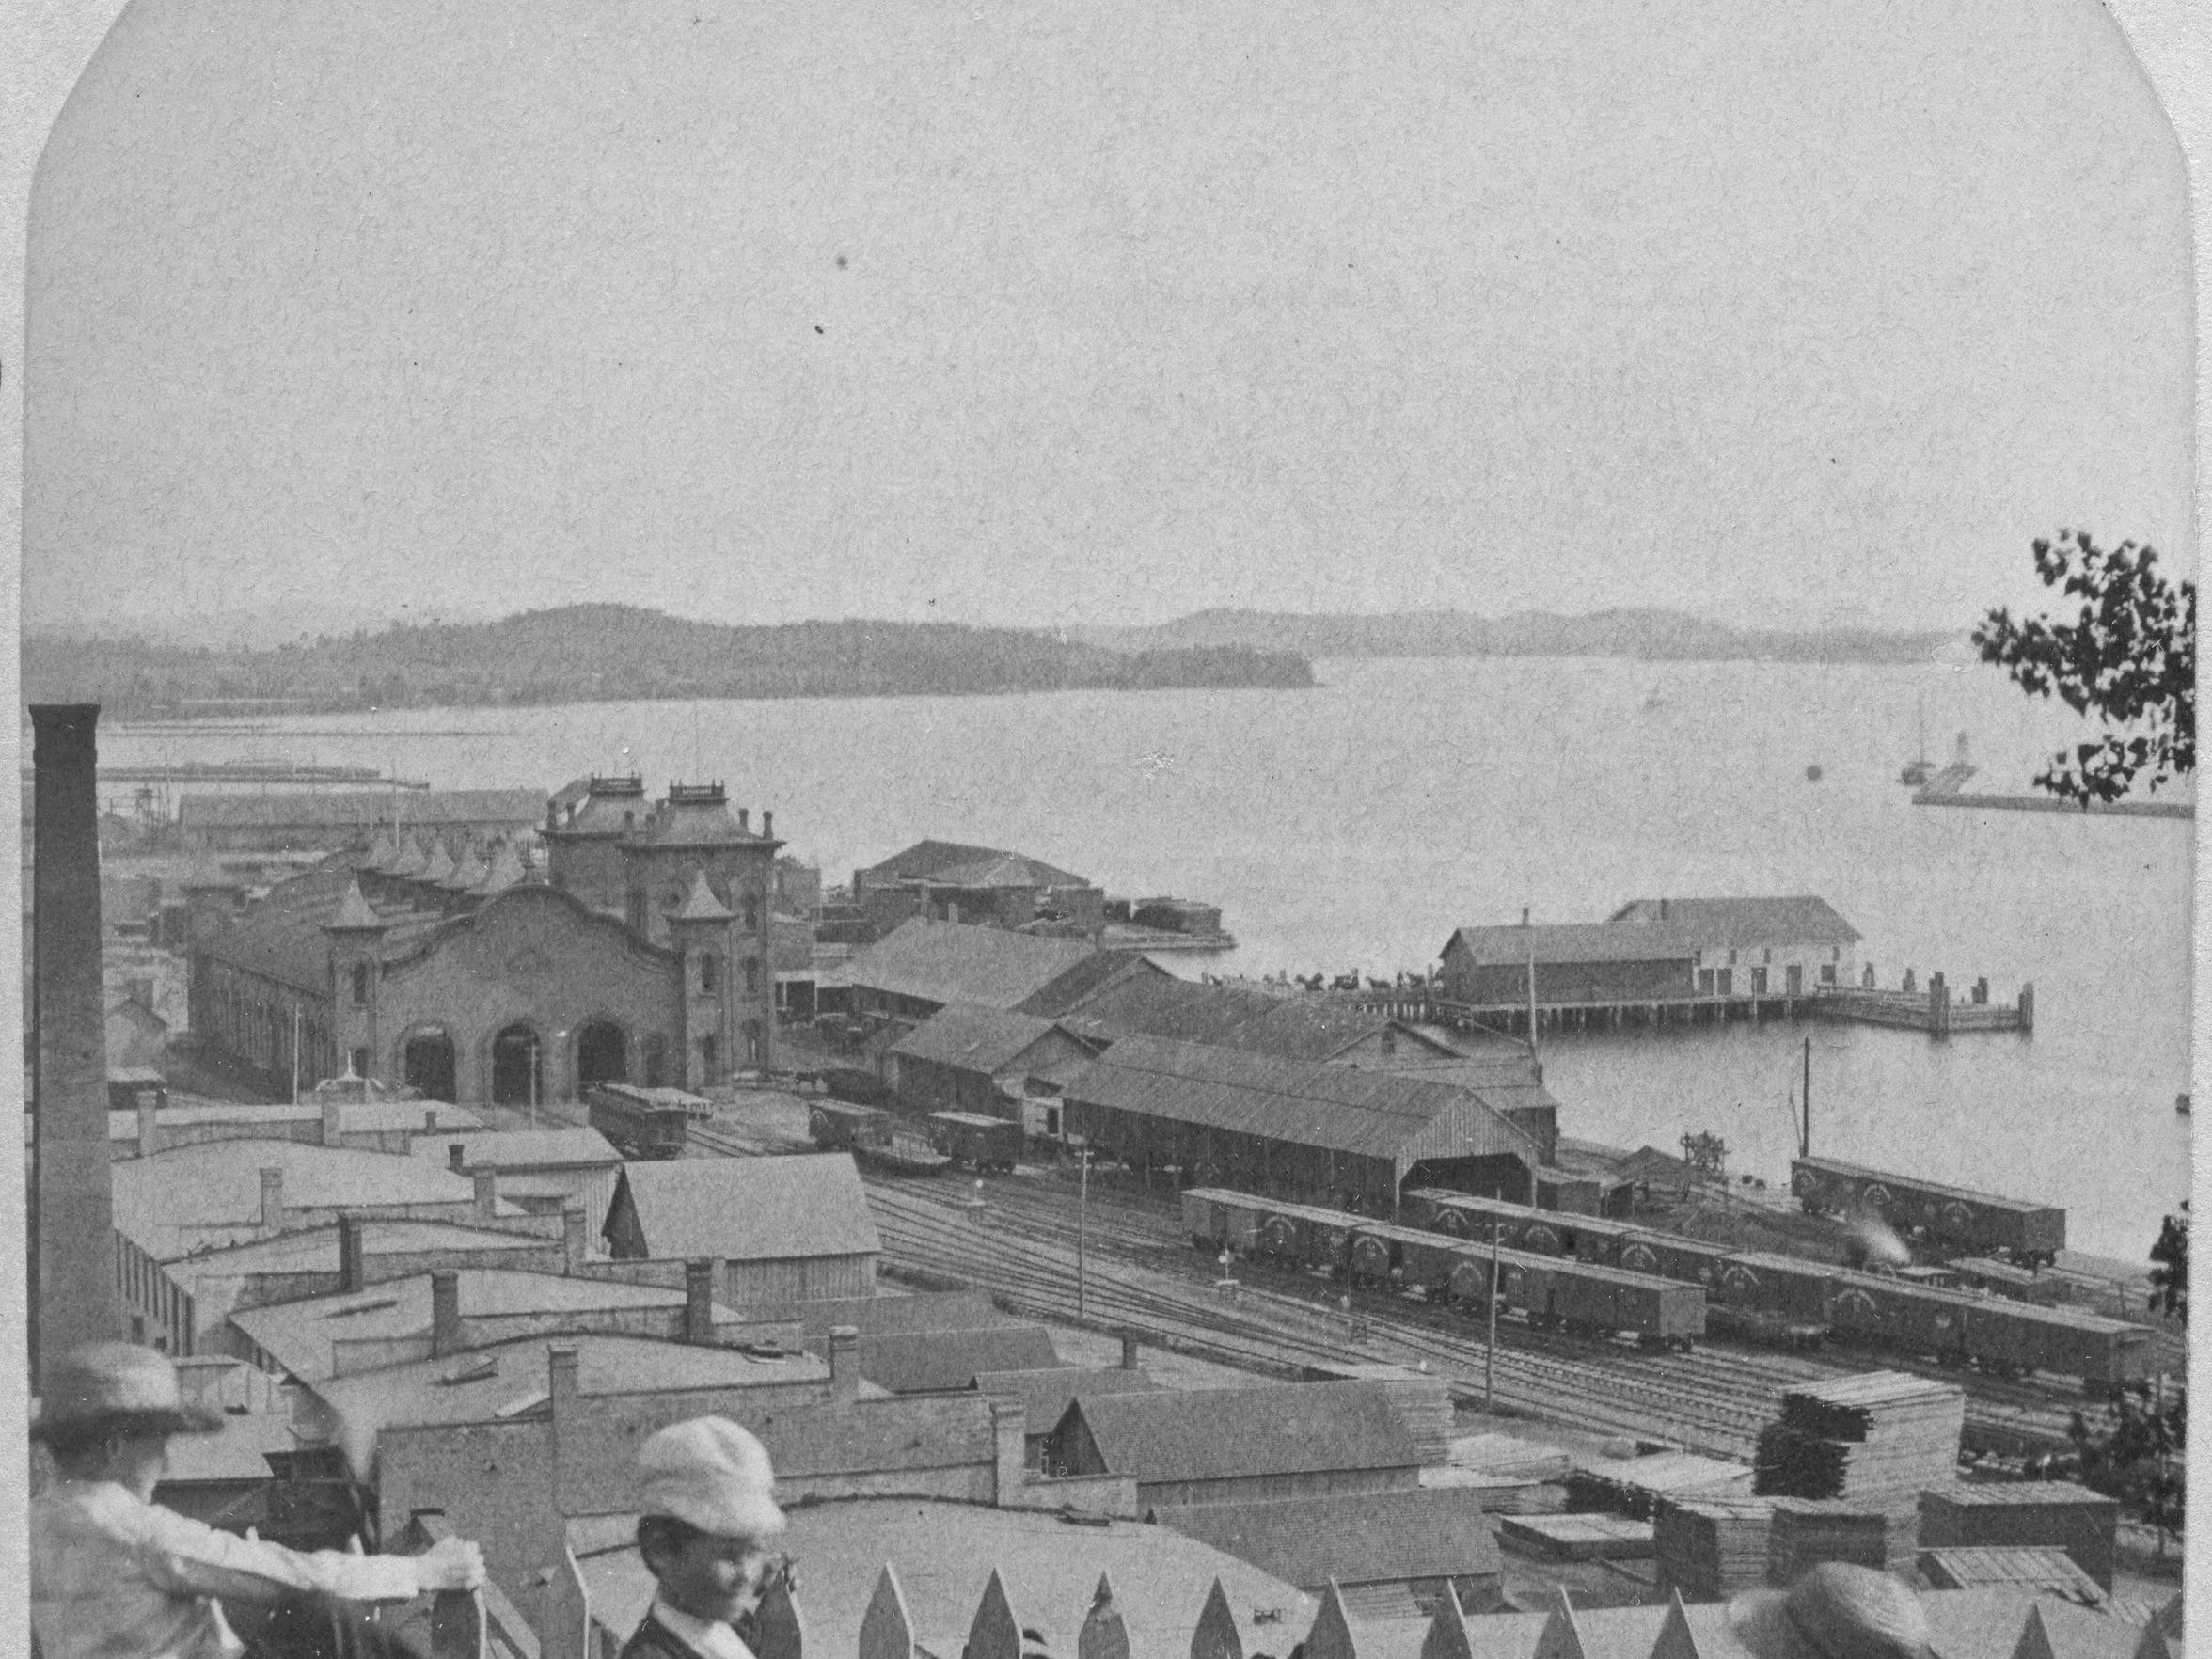 A view of Burlington's waterfront, looking southwest